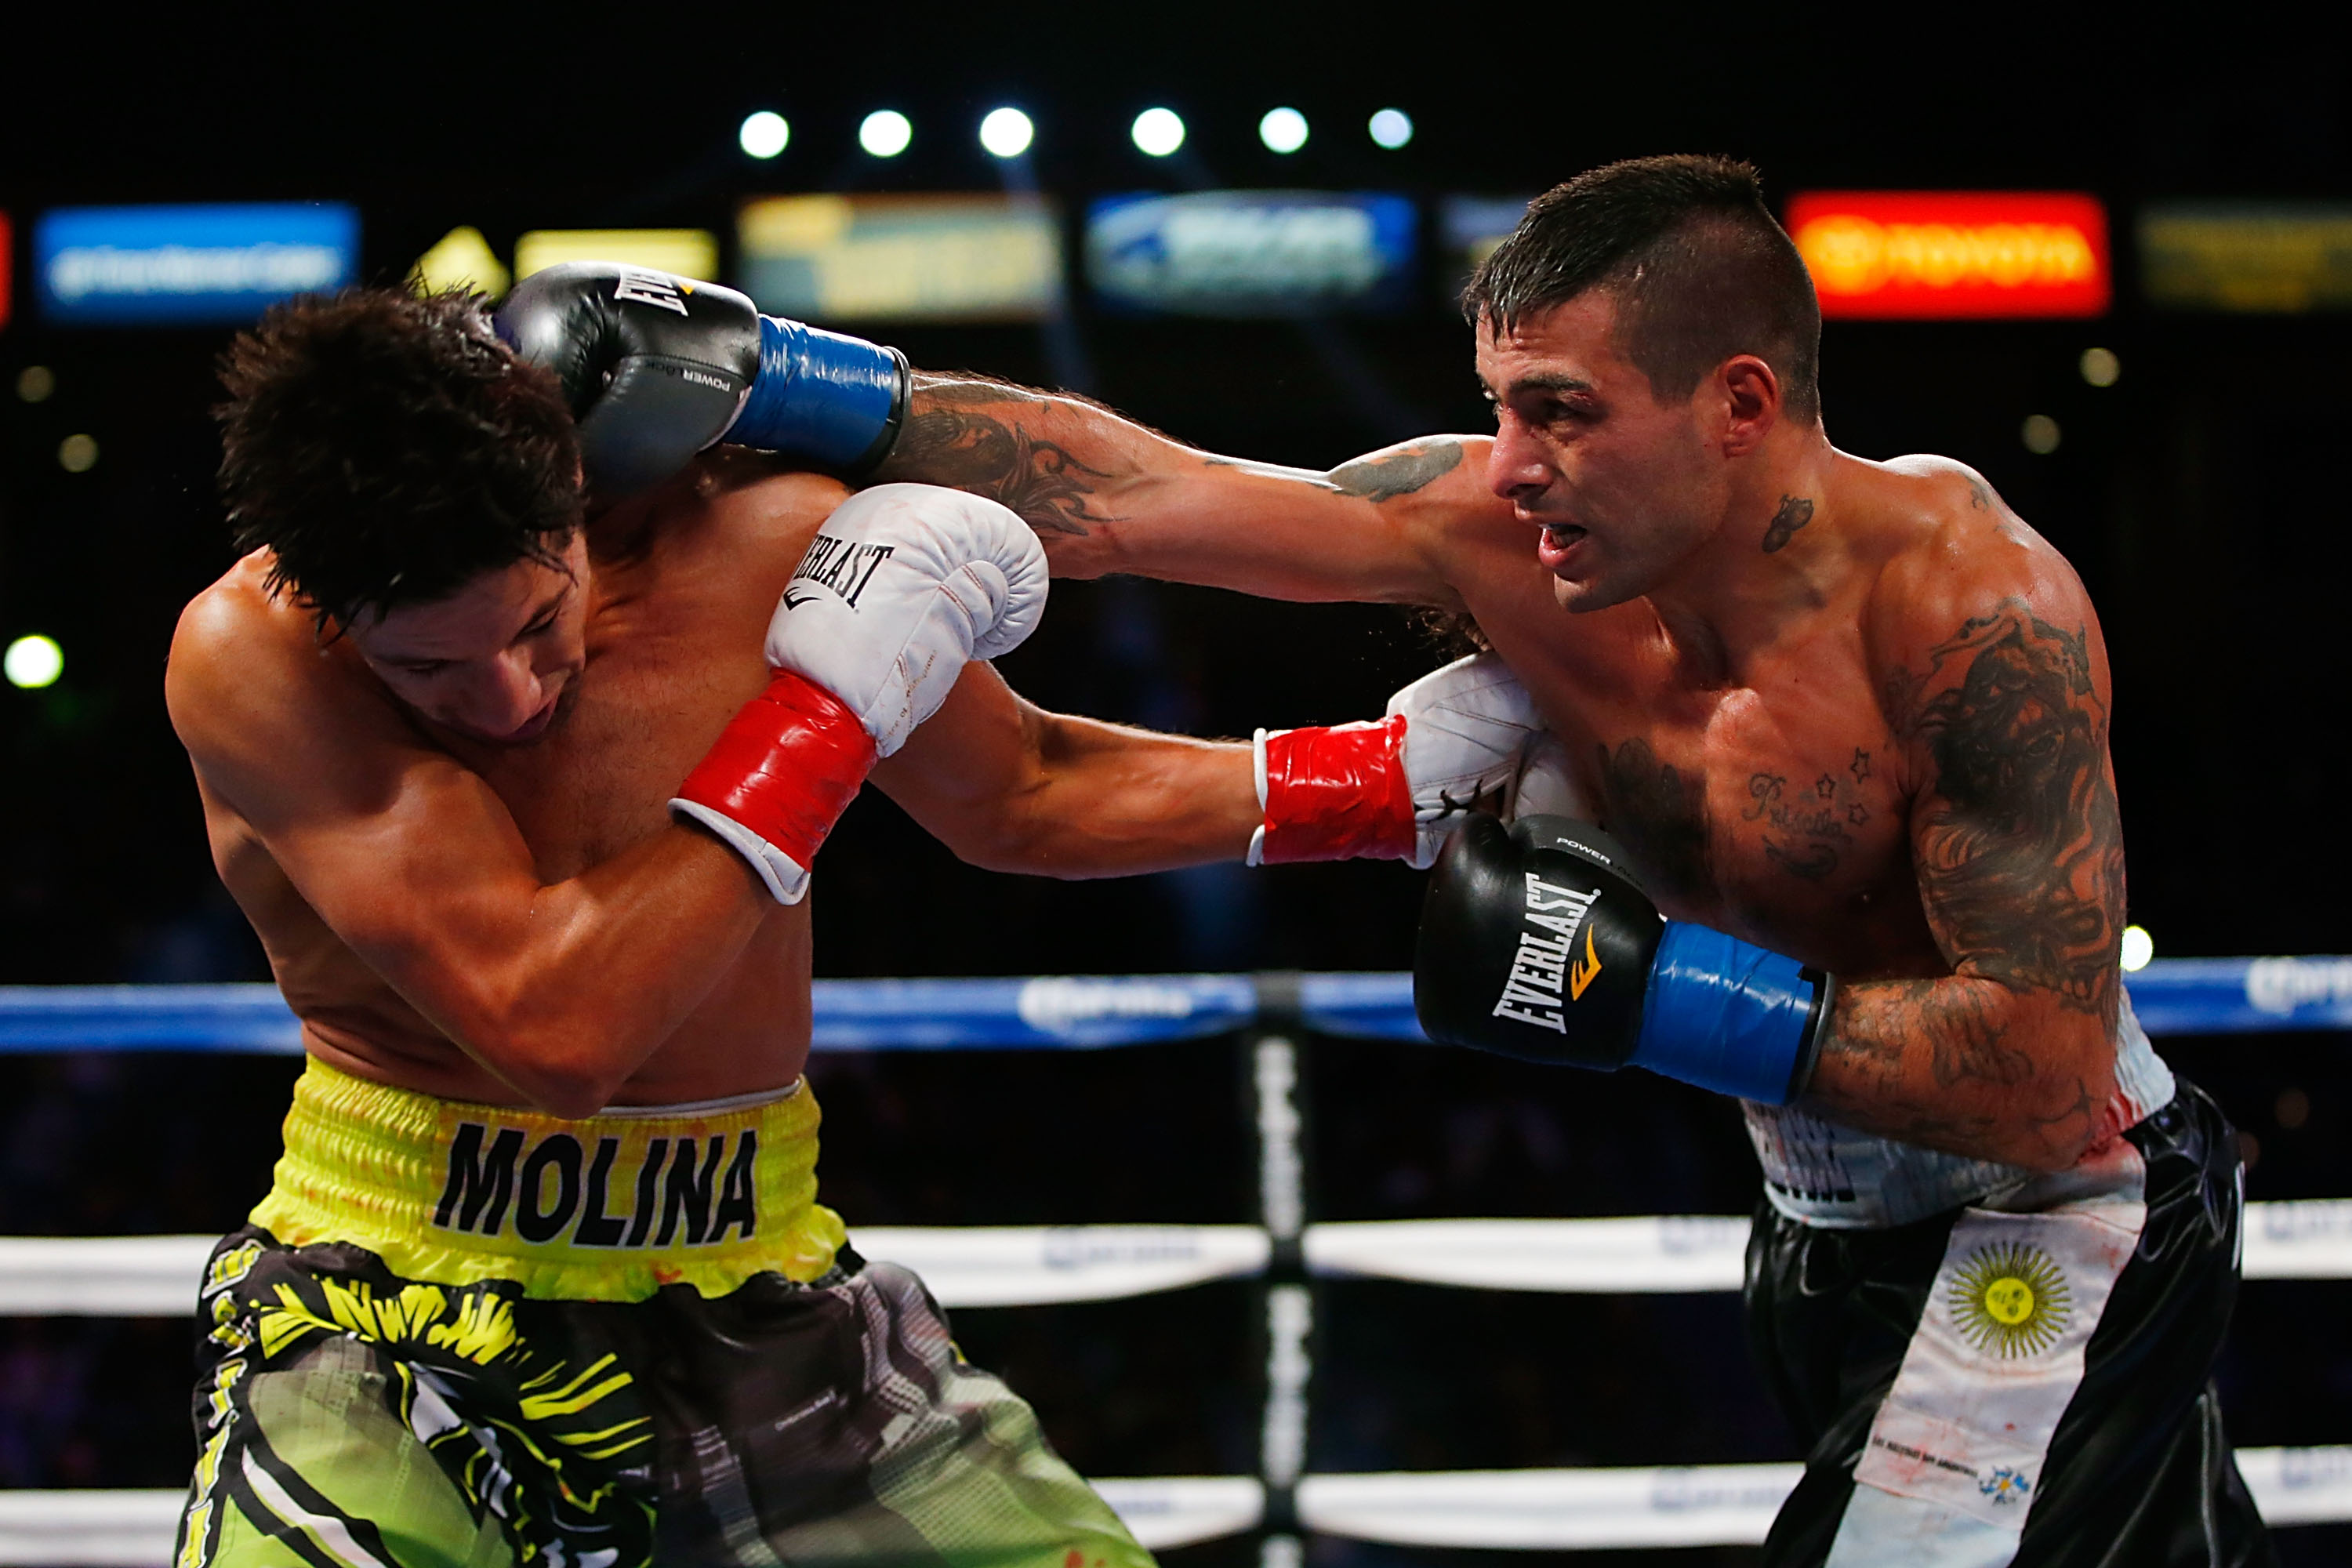 Lucas Matthysse (R) punches John Molina (Getty)